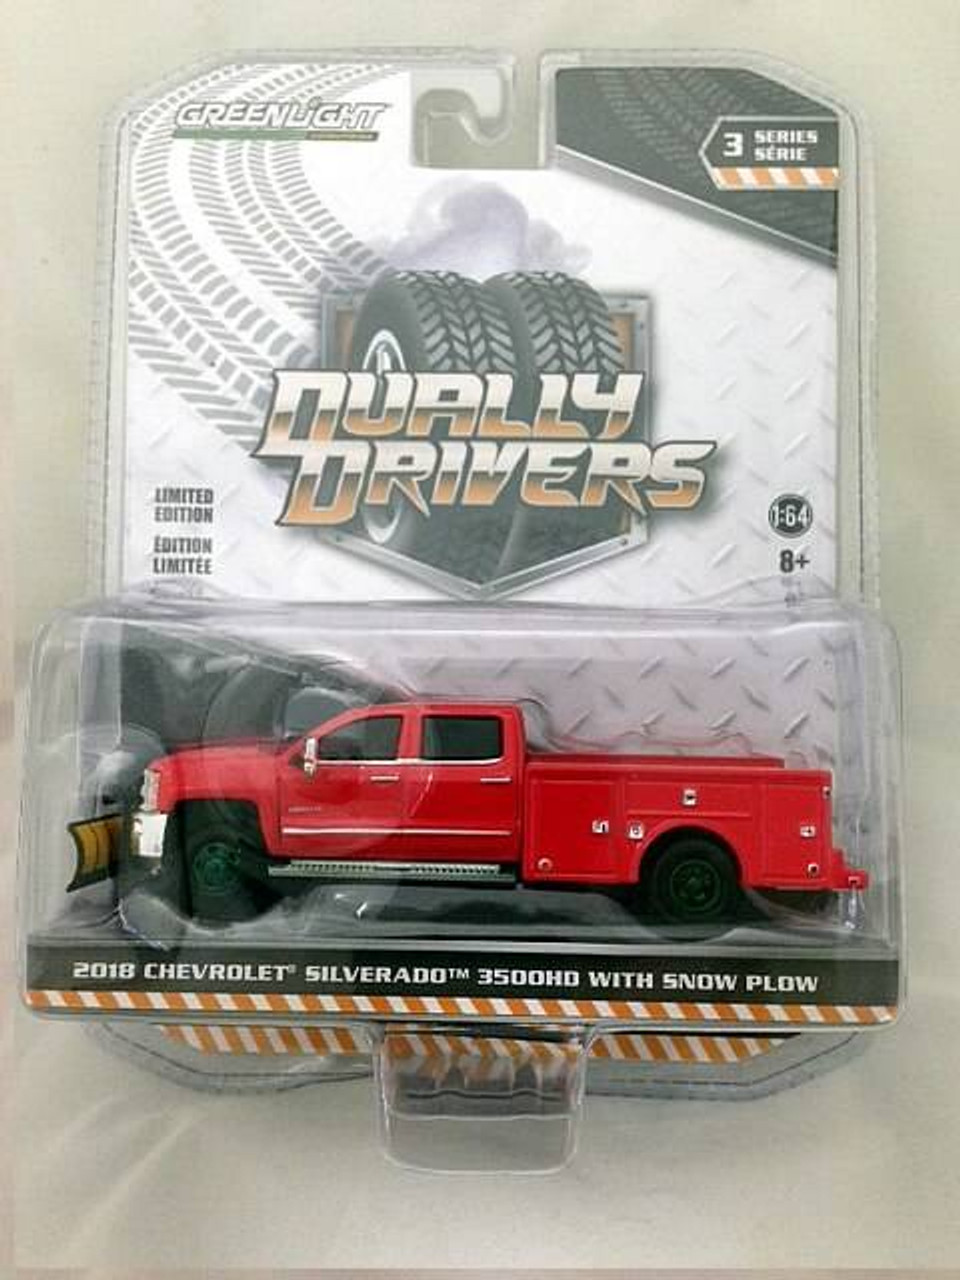 Greenlight 46030-A Dually Drivers Series 3-2018 Chevrolet Silverado 3500 Dually Service Bed with Snow Plow 1:64 Scale